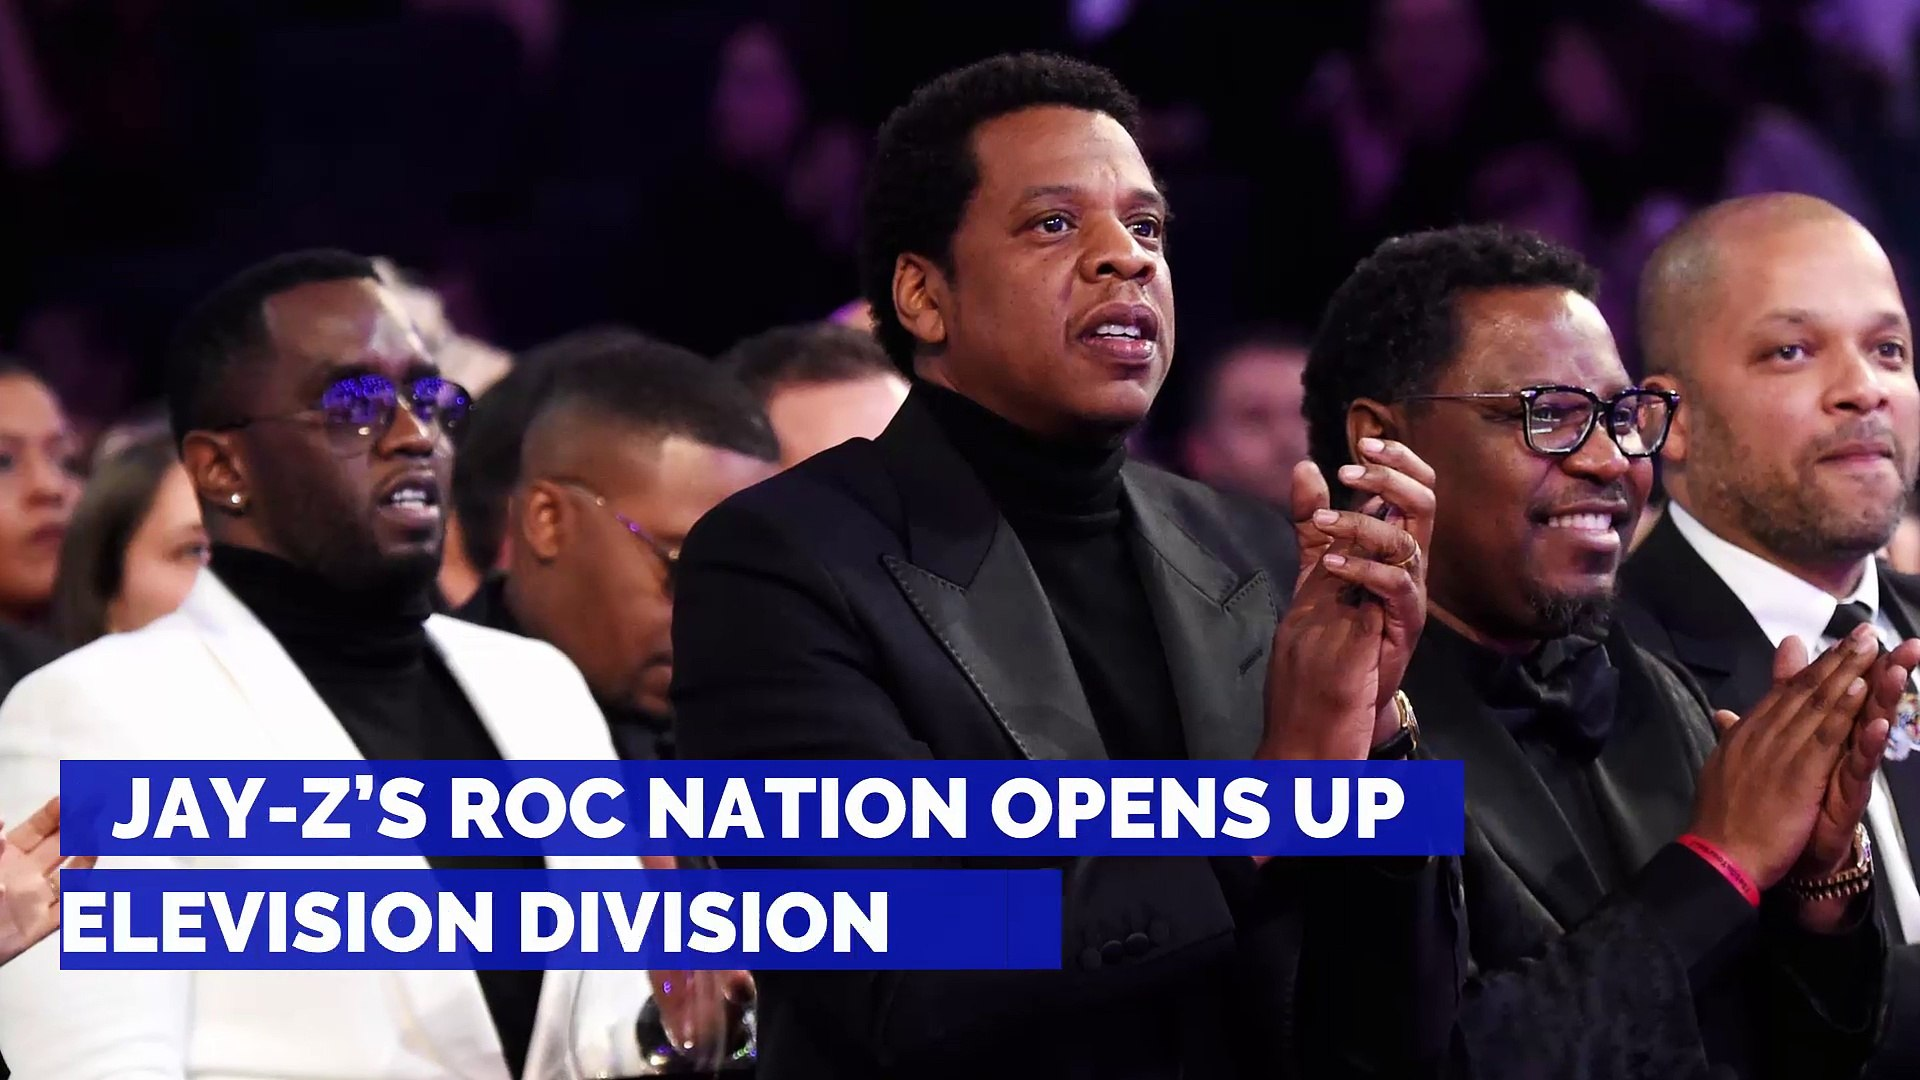 Jay-Z's Roc Nation Opens Up Television Division